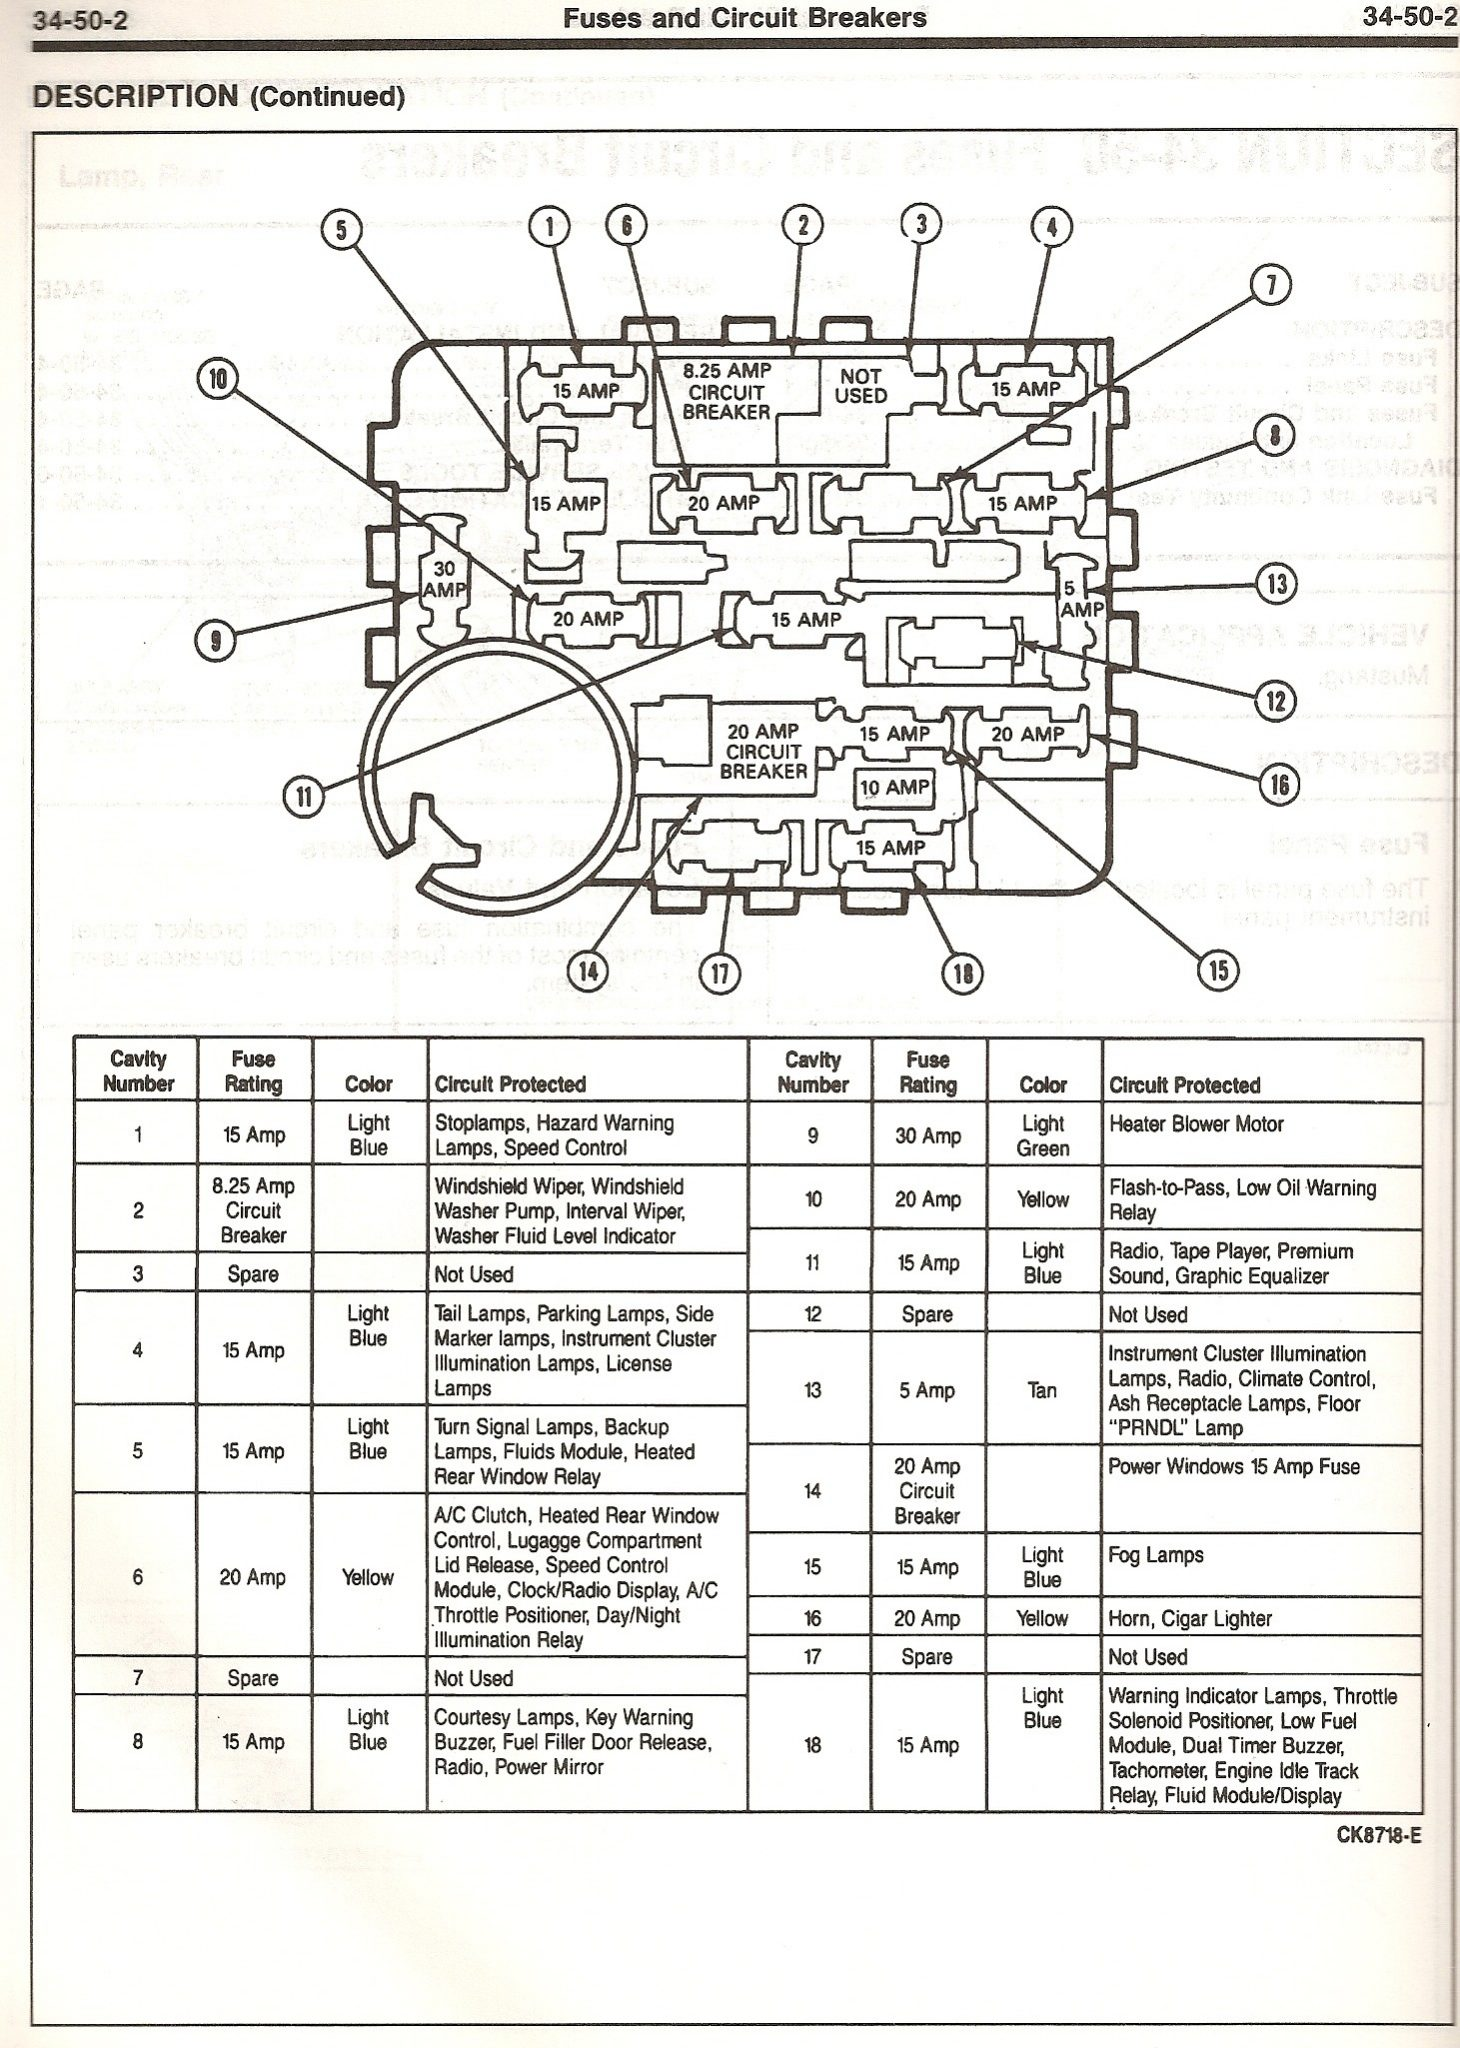 1991 ford mustang lx fuse box diagram diy wiring diagrams u2022 rh aviomar co 1991 mustang fuse box diagram Ford Fuse Box Diagram